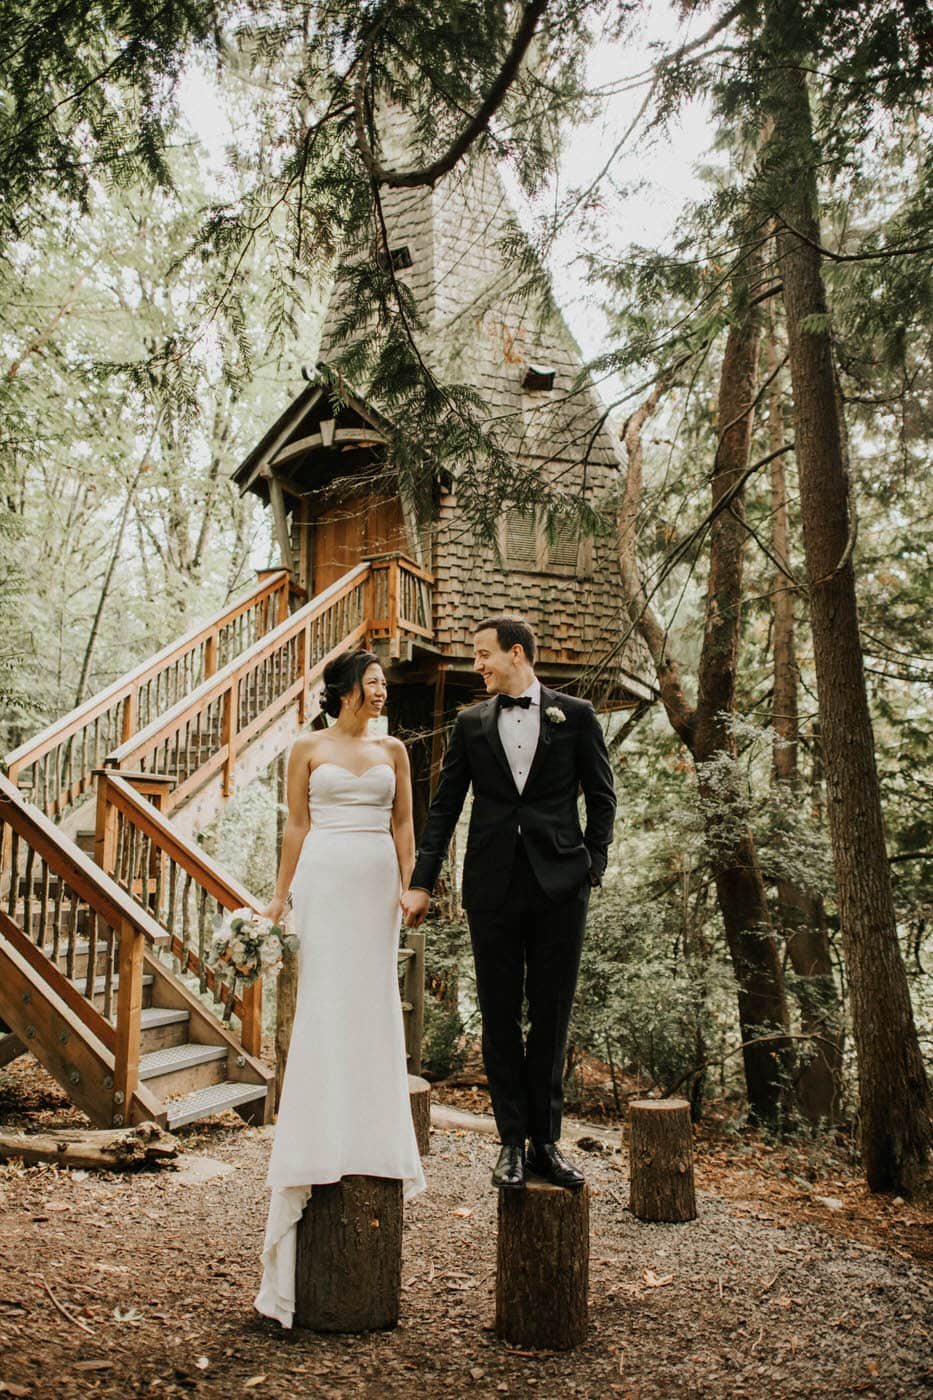 Bride and groom photos at treehouse built by pete nelson at islandwood bainbridge island